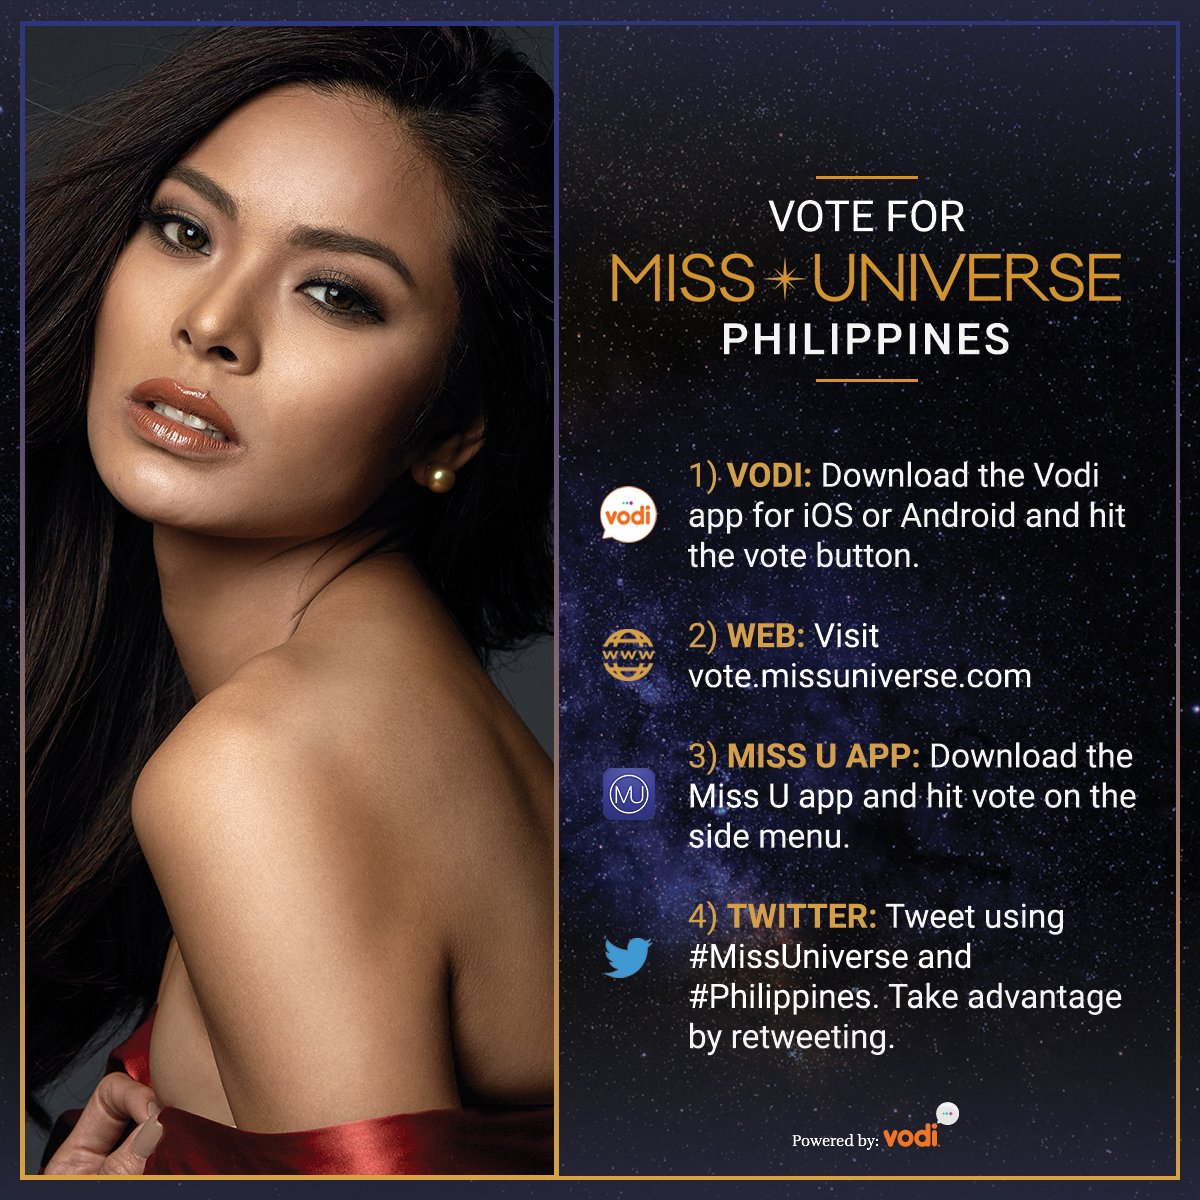 Voting for #MissUniverse is officially OPEN. RT to vote for Miss Universe #Philippines!   Watch her LIVE: Sunday Jan. 29 at 7/6 on @FOXTV.